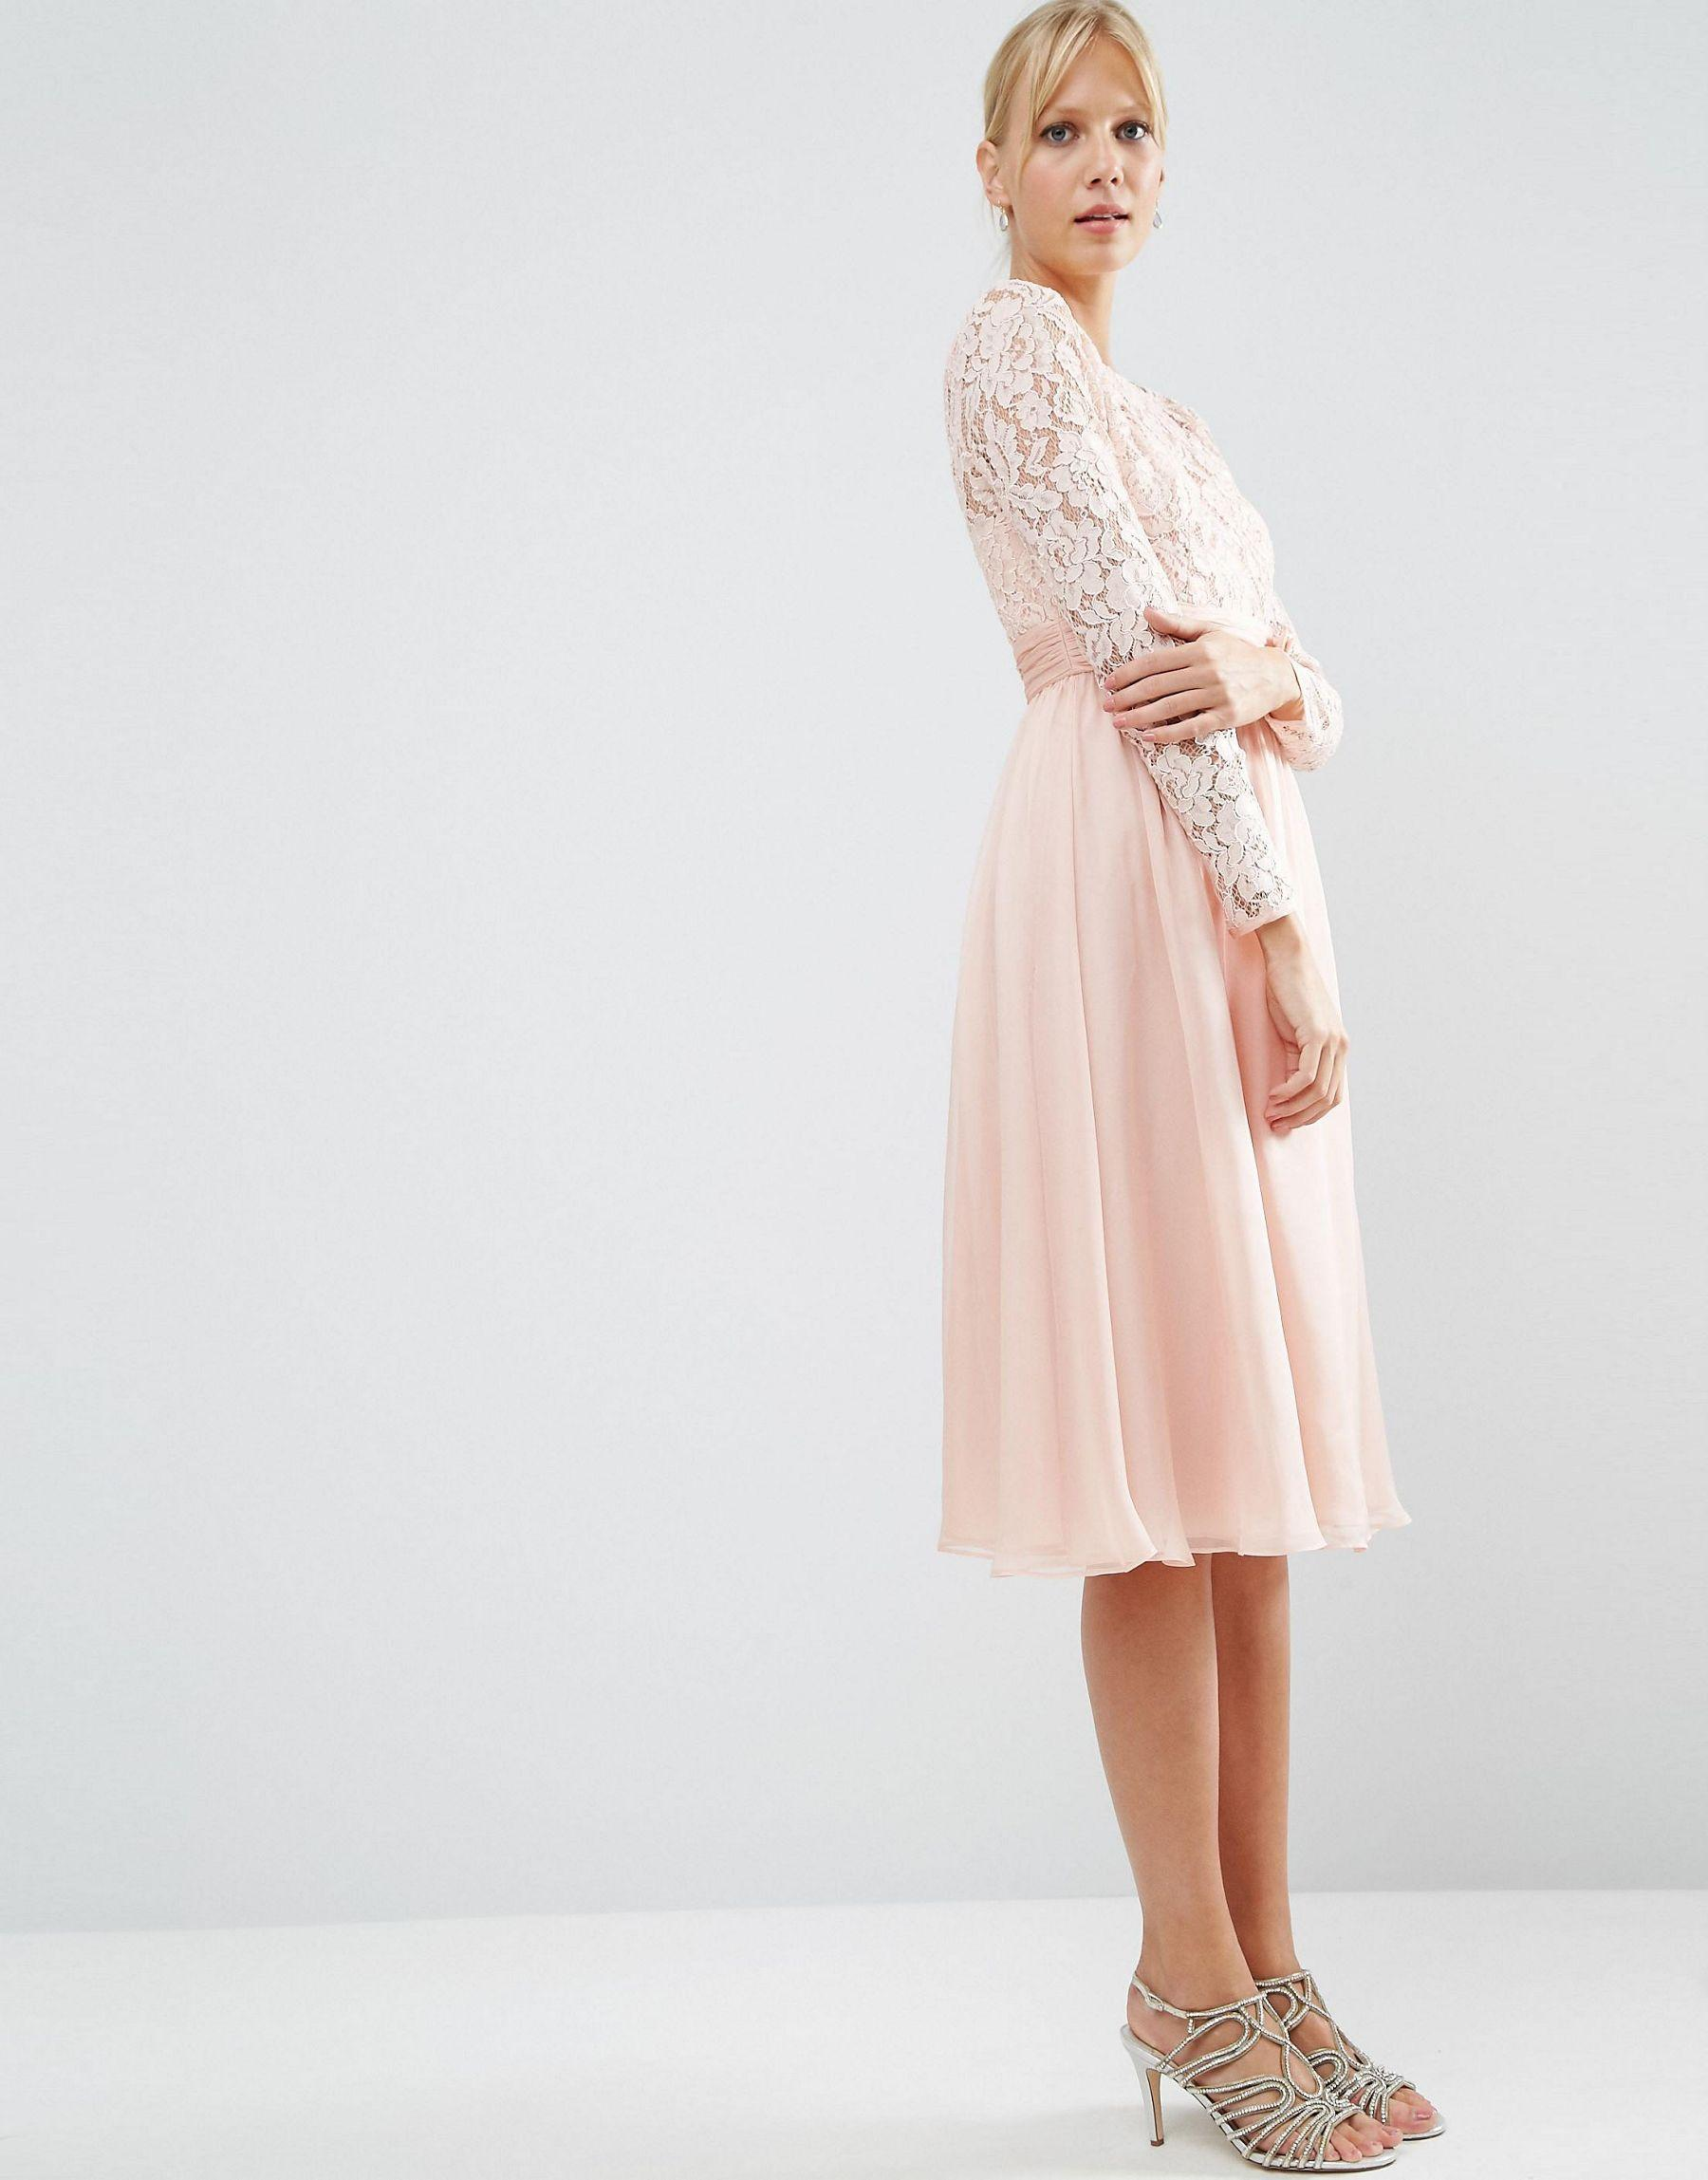 Asos wedding embellished floral drape back pencil midi dress - Asos Pink Wedding Midi Dress With Lace And Bow Detail Lyst View Fullscreen